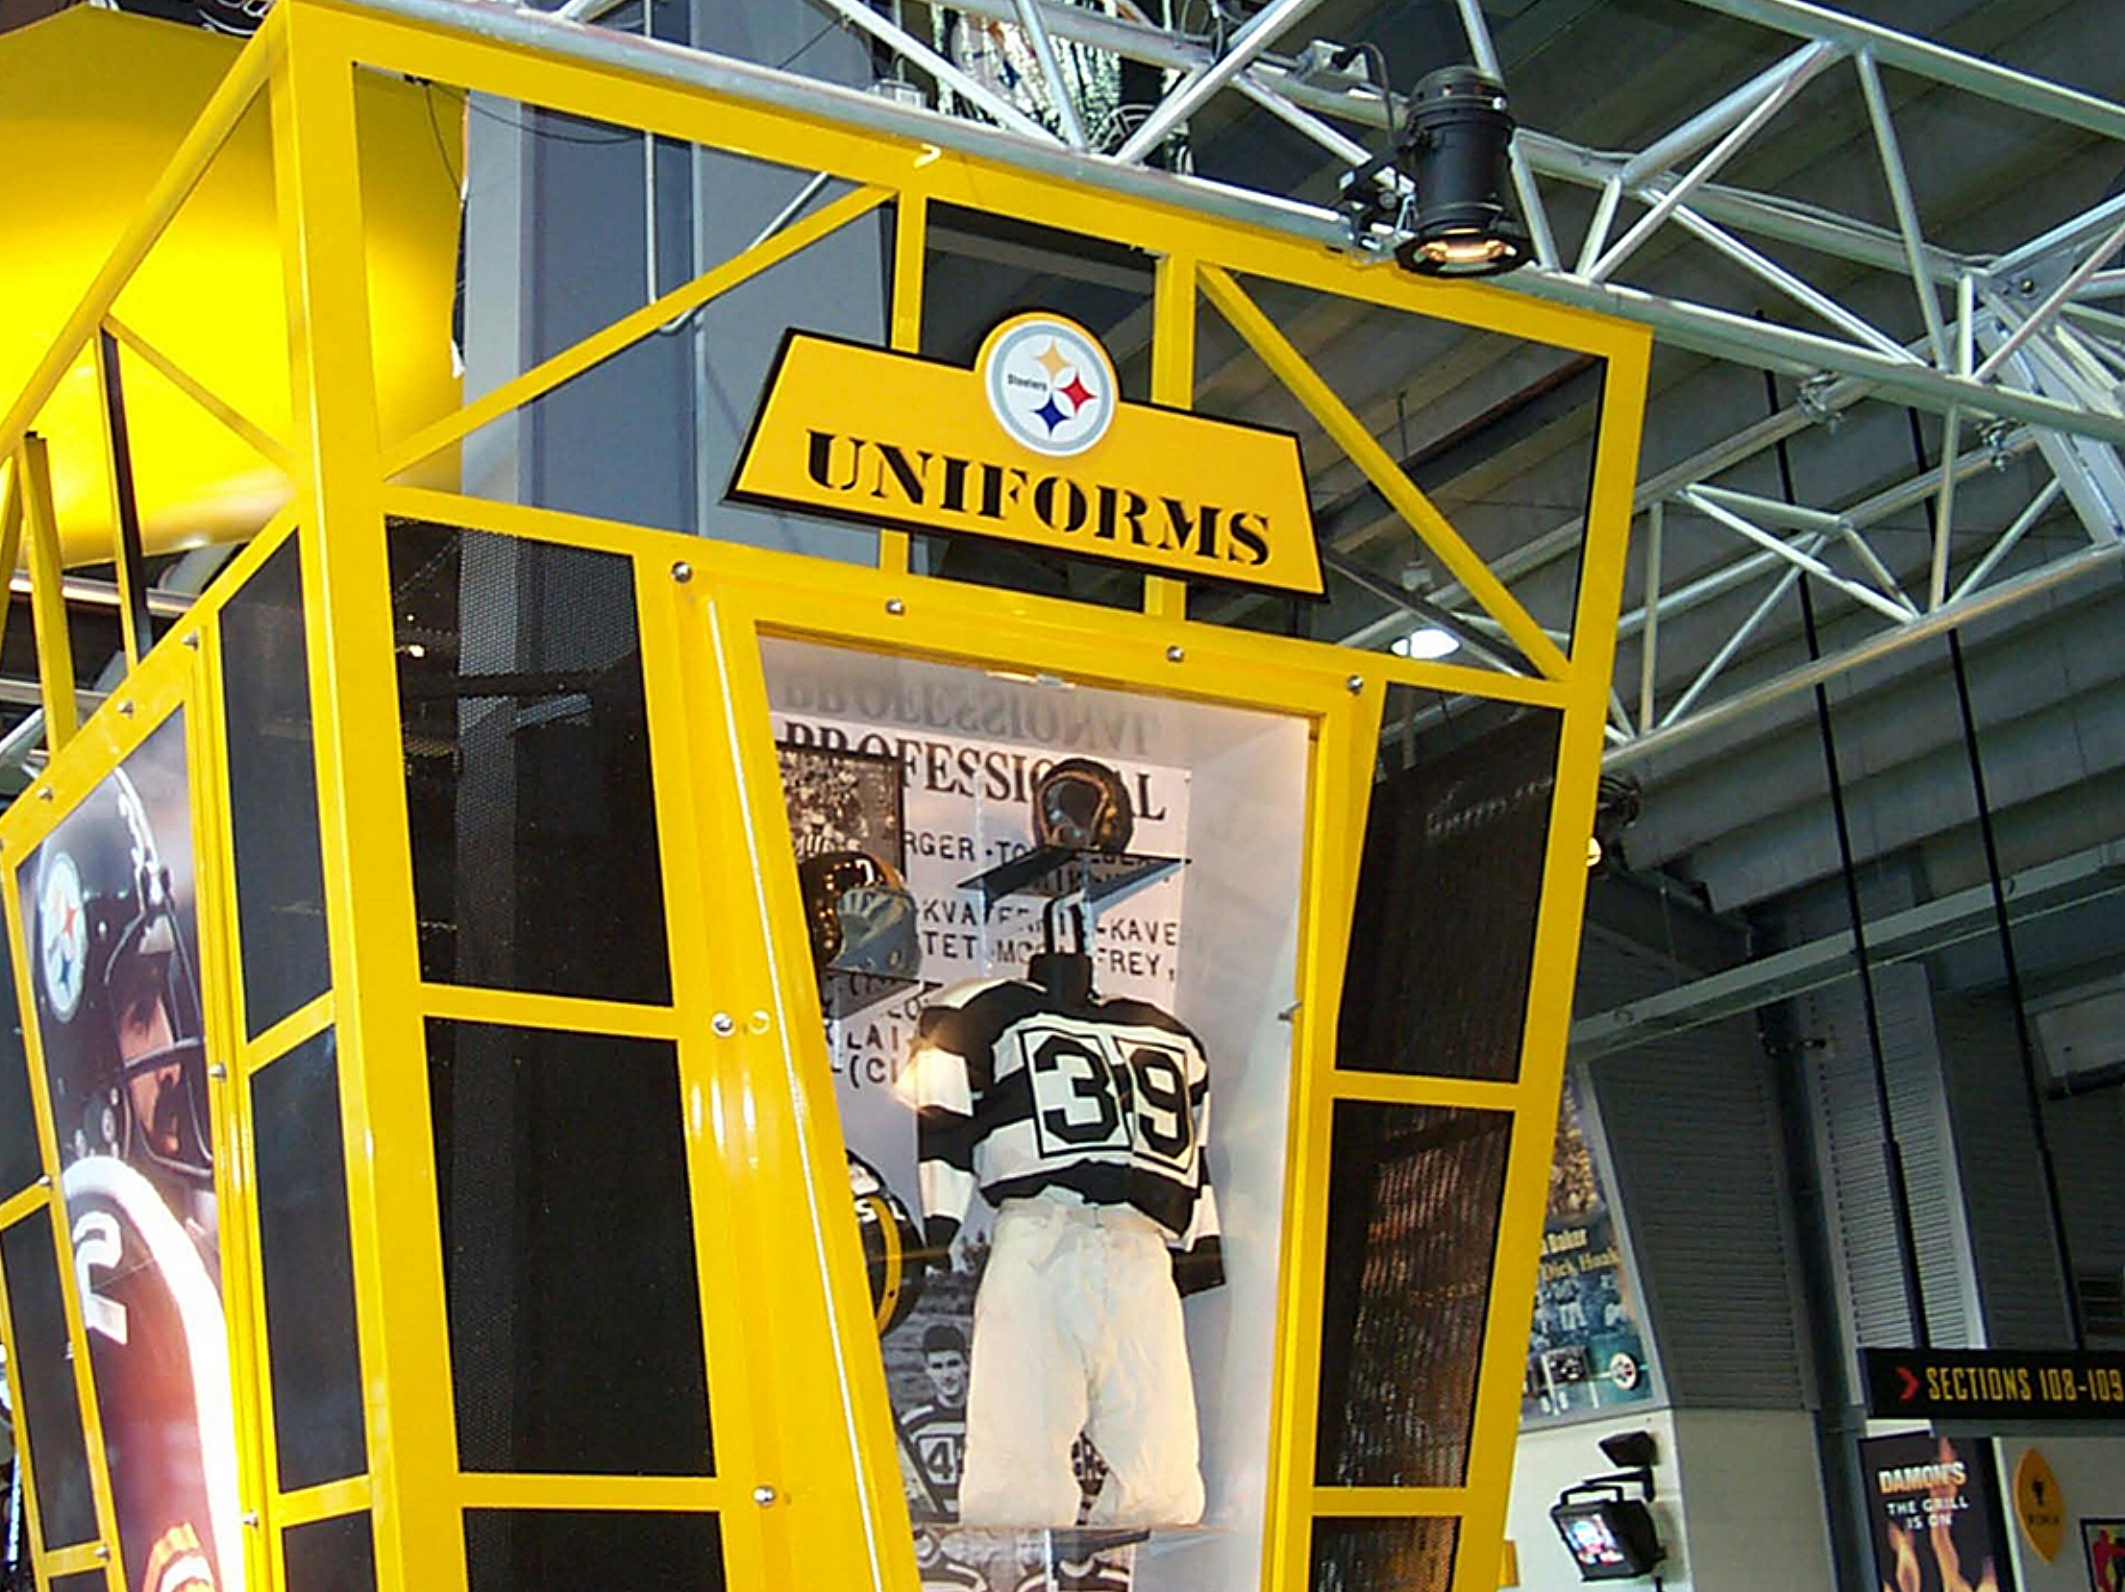 pittsburgh steelers 07.jpg